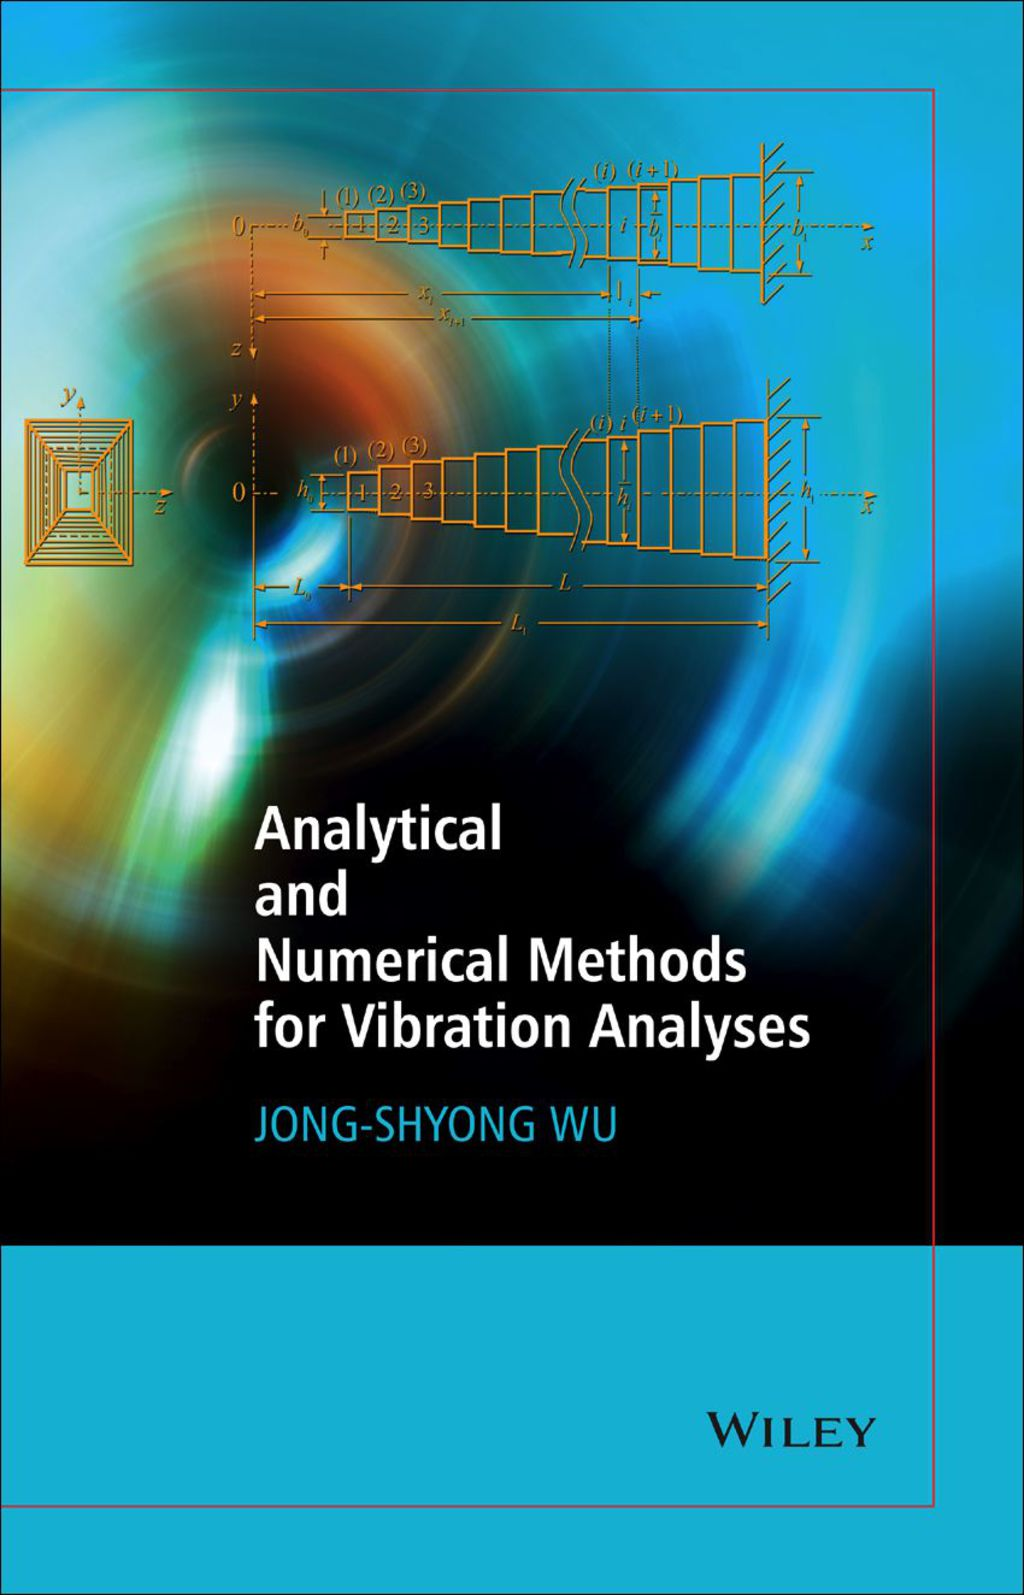 Analytical and Numerical Methods for Vibration Analyses (ebook) eBooks